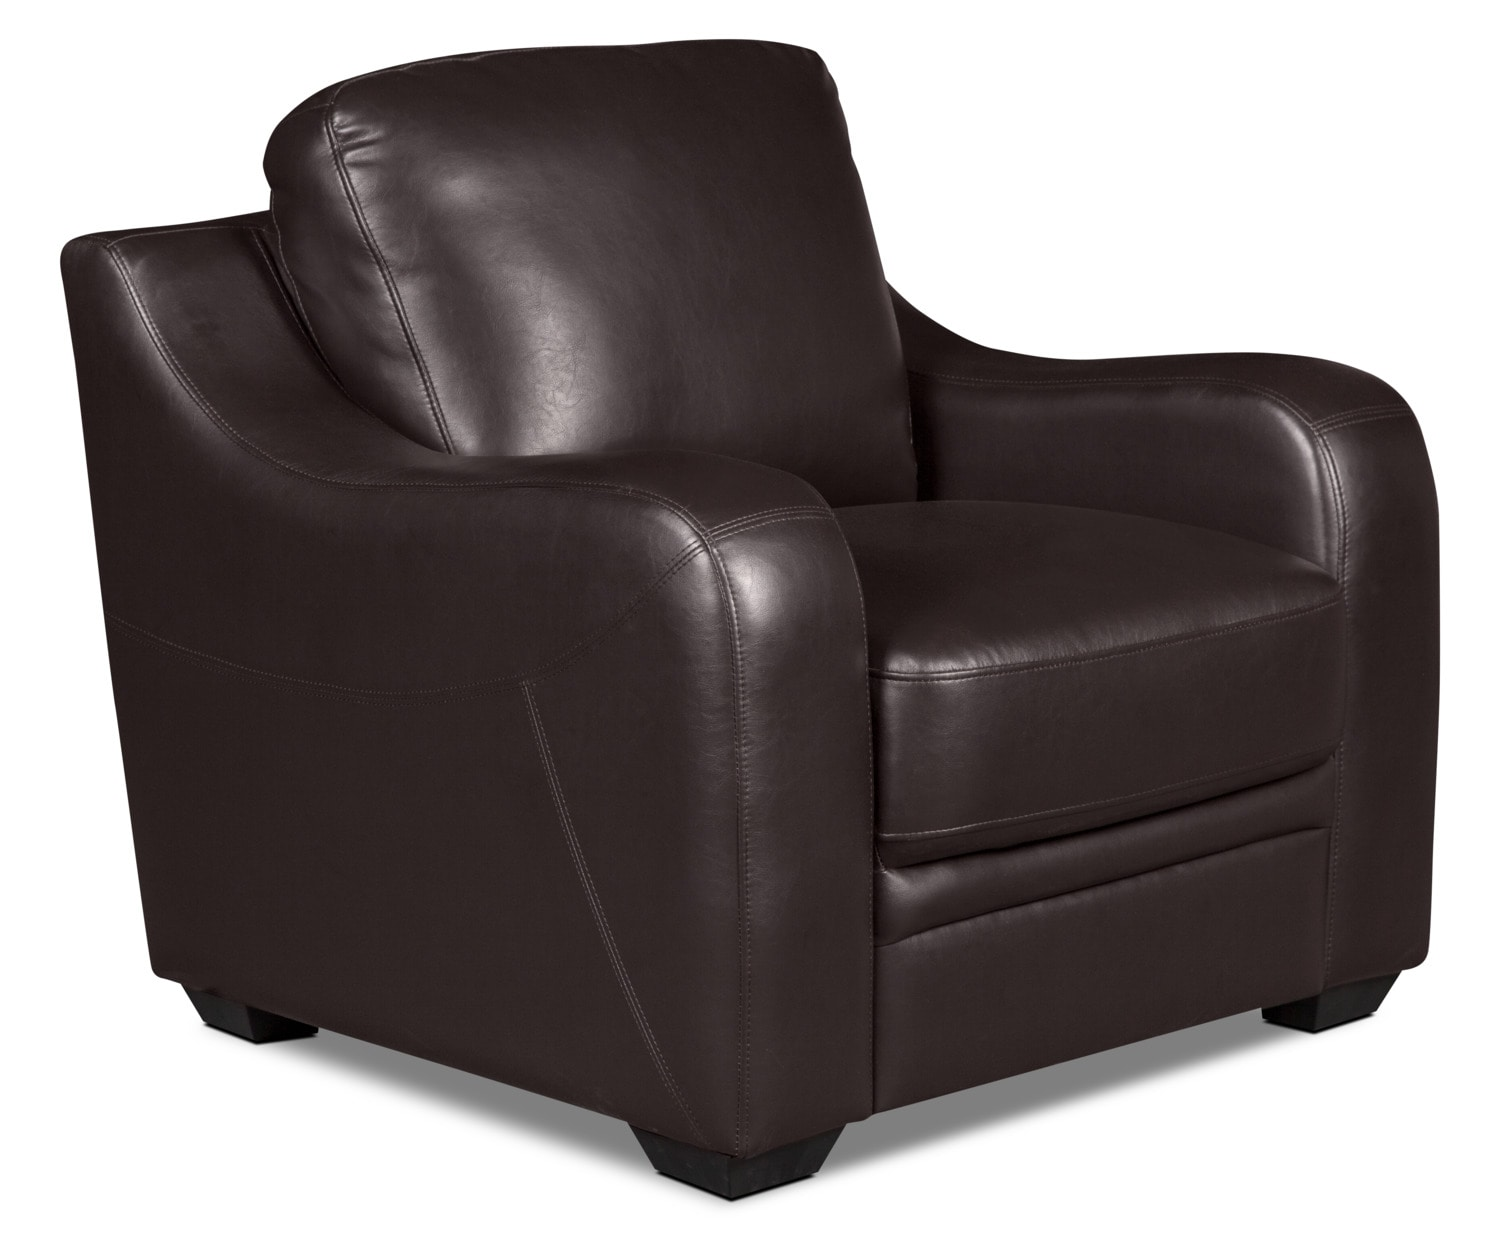 Benson Leather-Look Fabric Chair – Brown